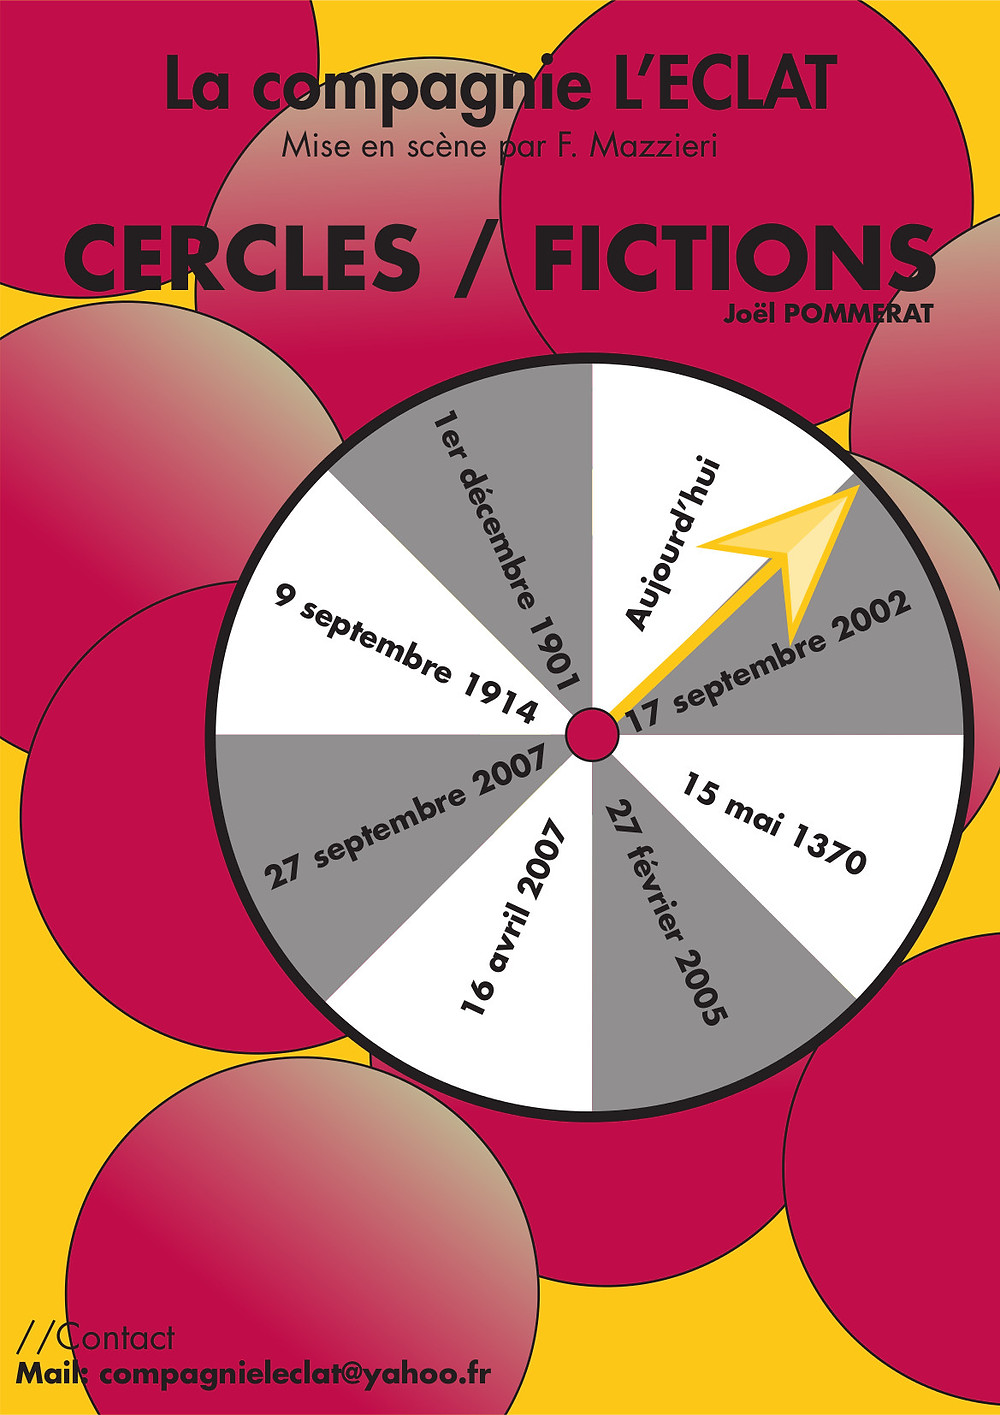 affiche_cercles_fictions2015.jpg